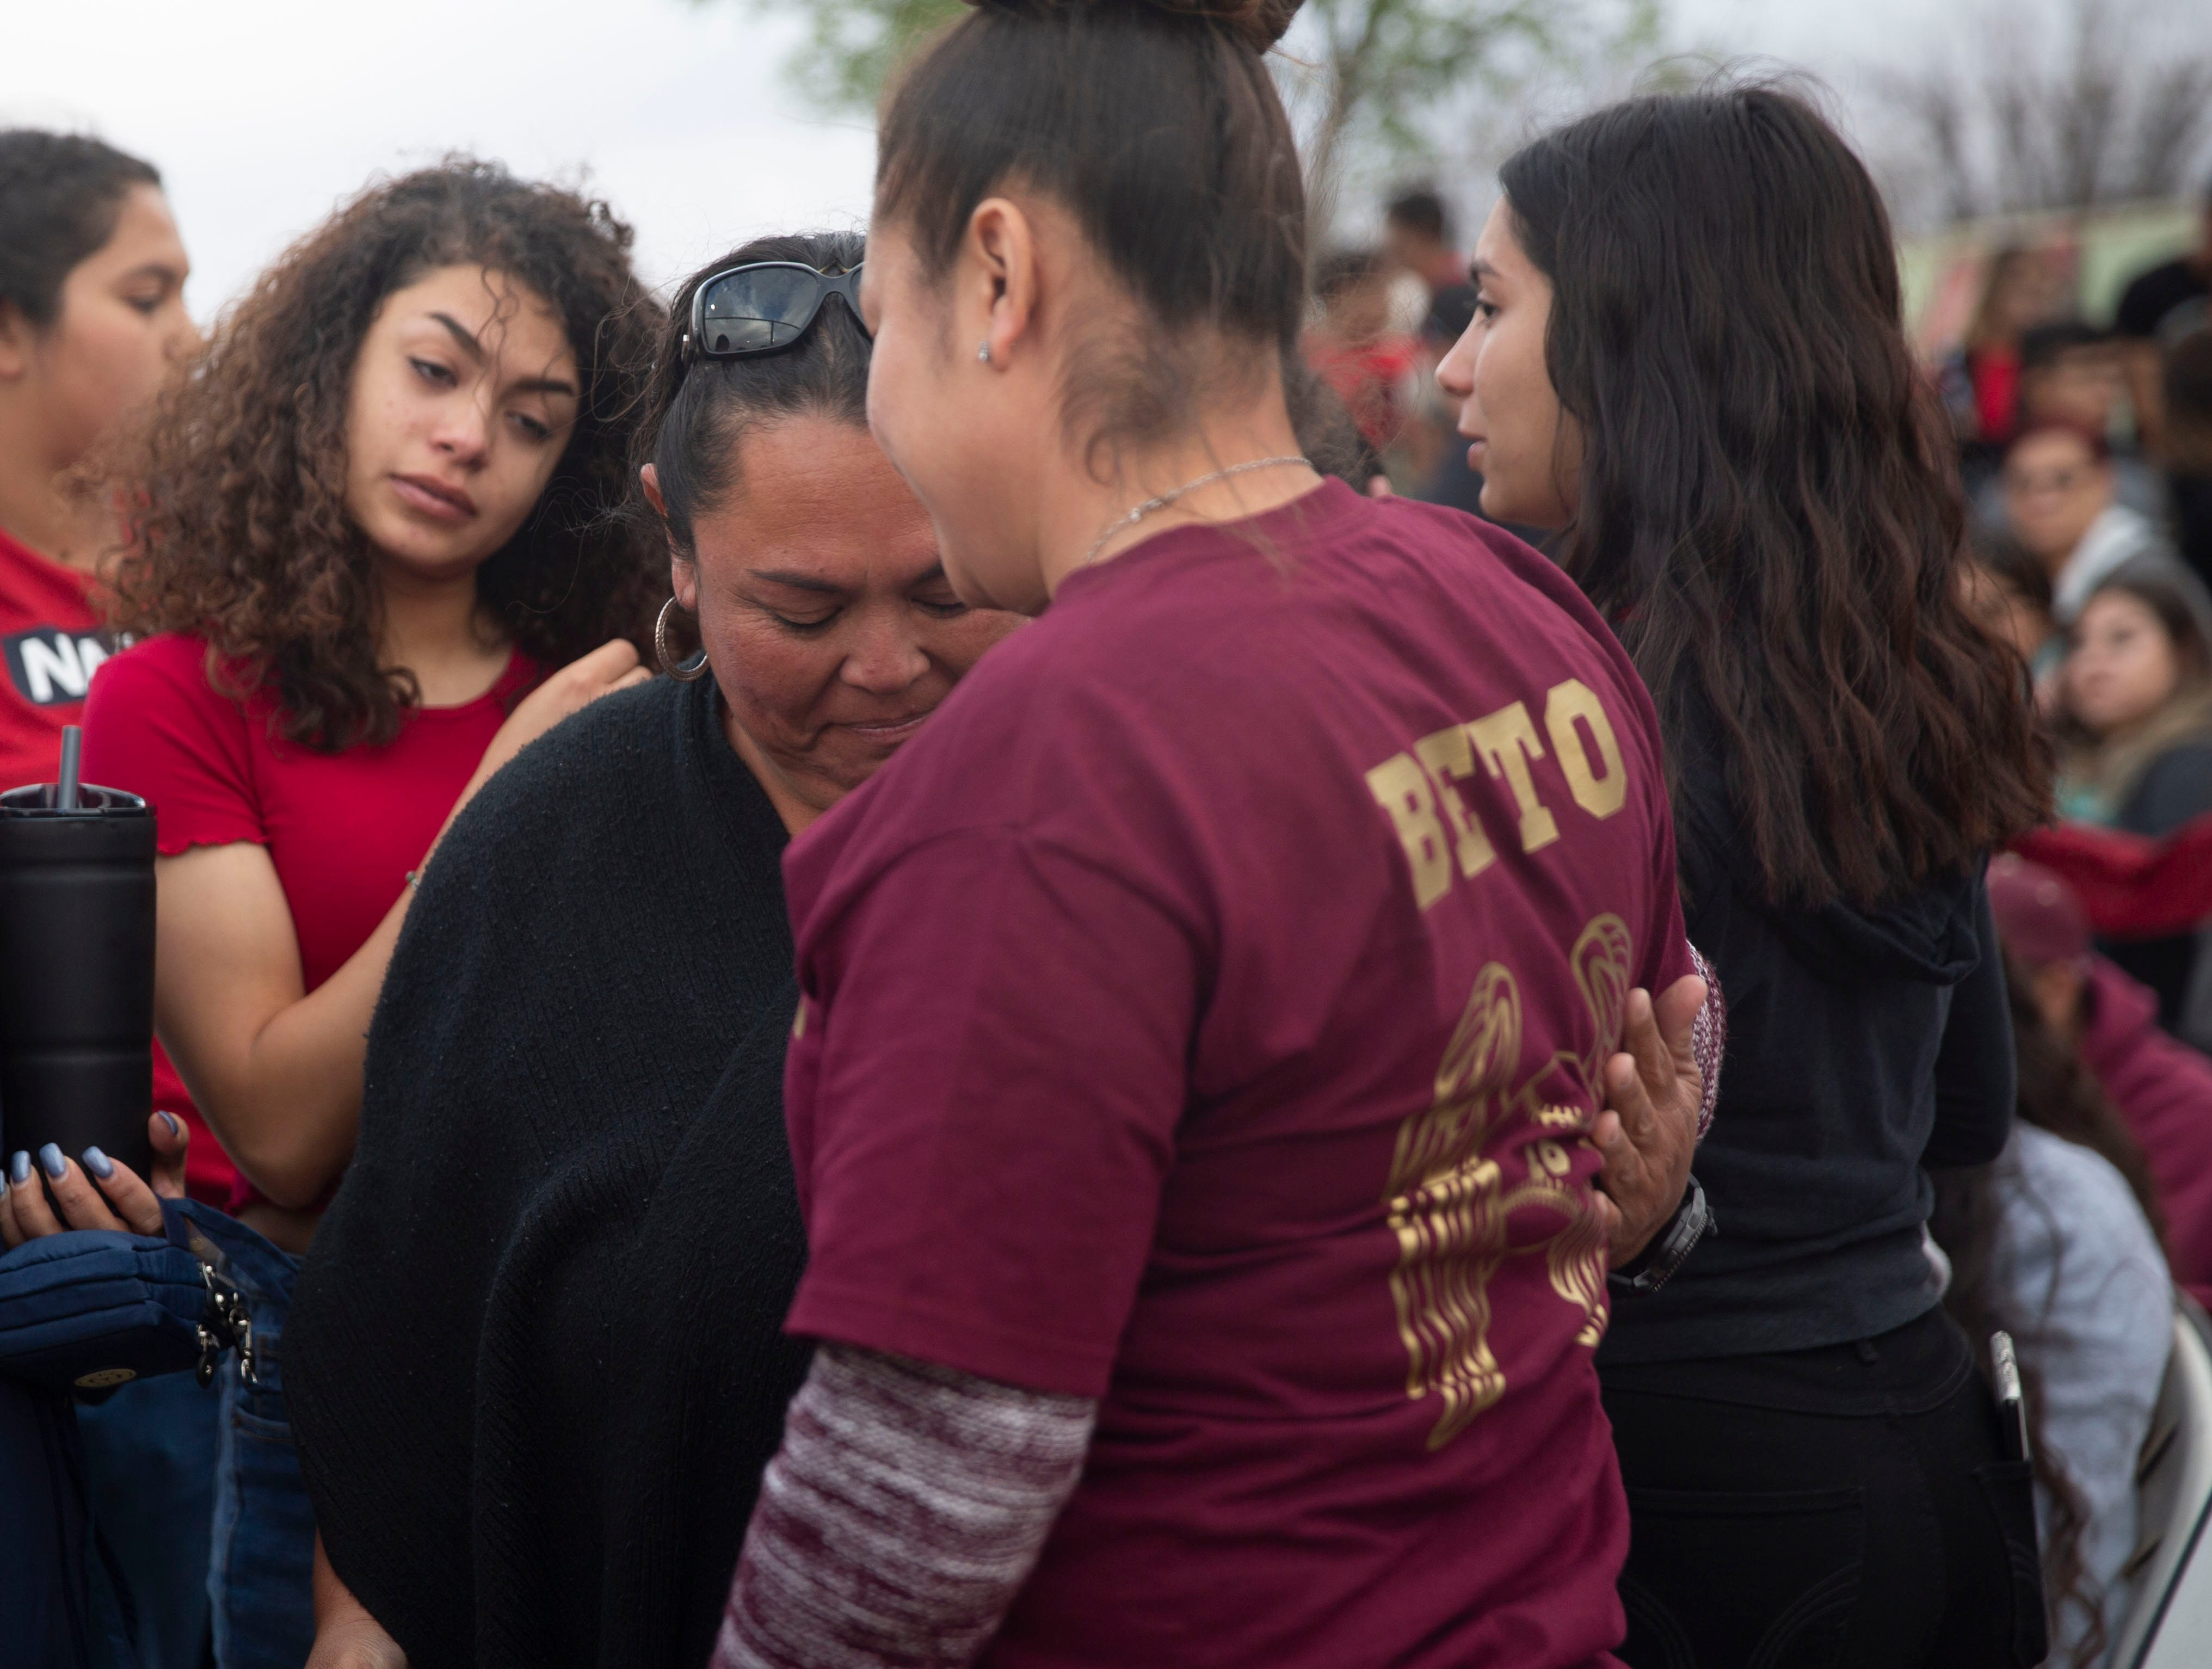 Friends, classmates and supporters of the Beto Romero family gathered Friday evening at a Gadsden High School double-header baseball game, to honor their fallen teammate, who was killed by an erratic driver earlier this week, in Anthony, New Mexico. Romero was just 16-years old.